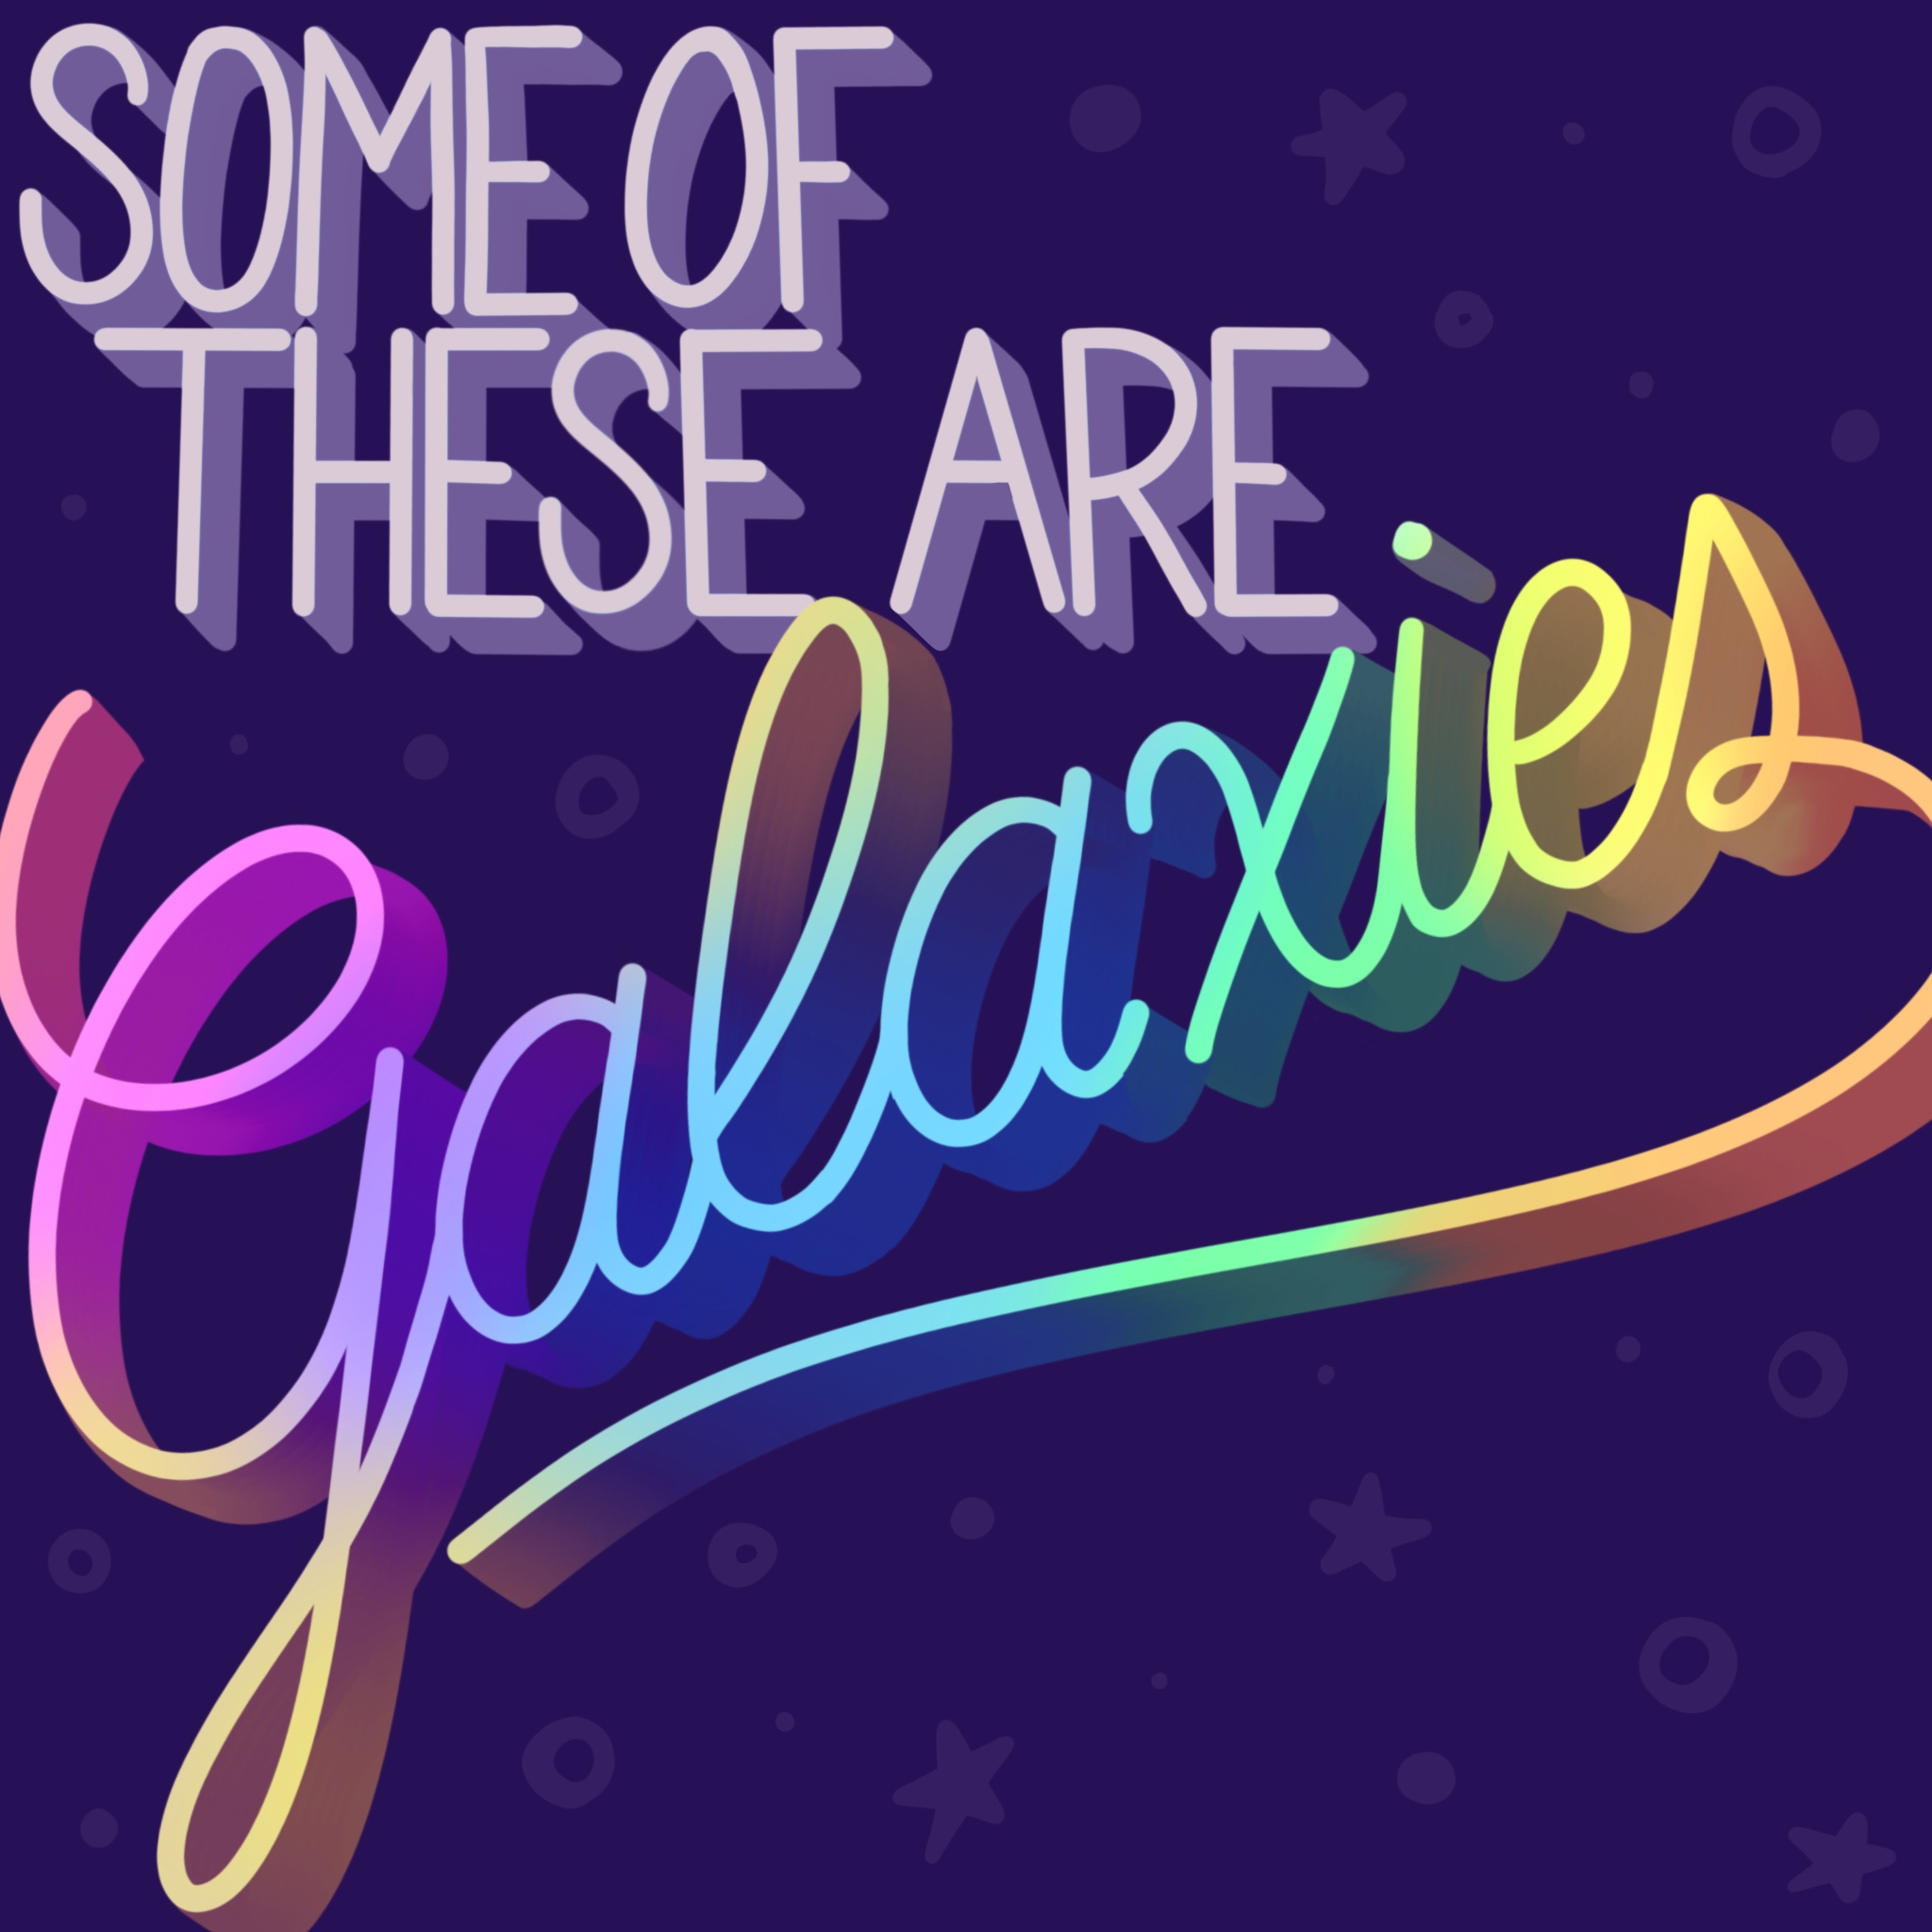 some of these are galaxies.jpg